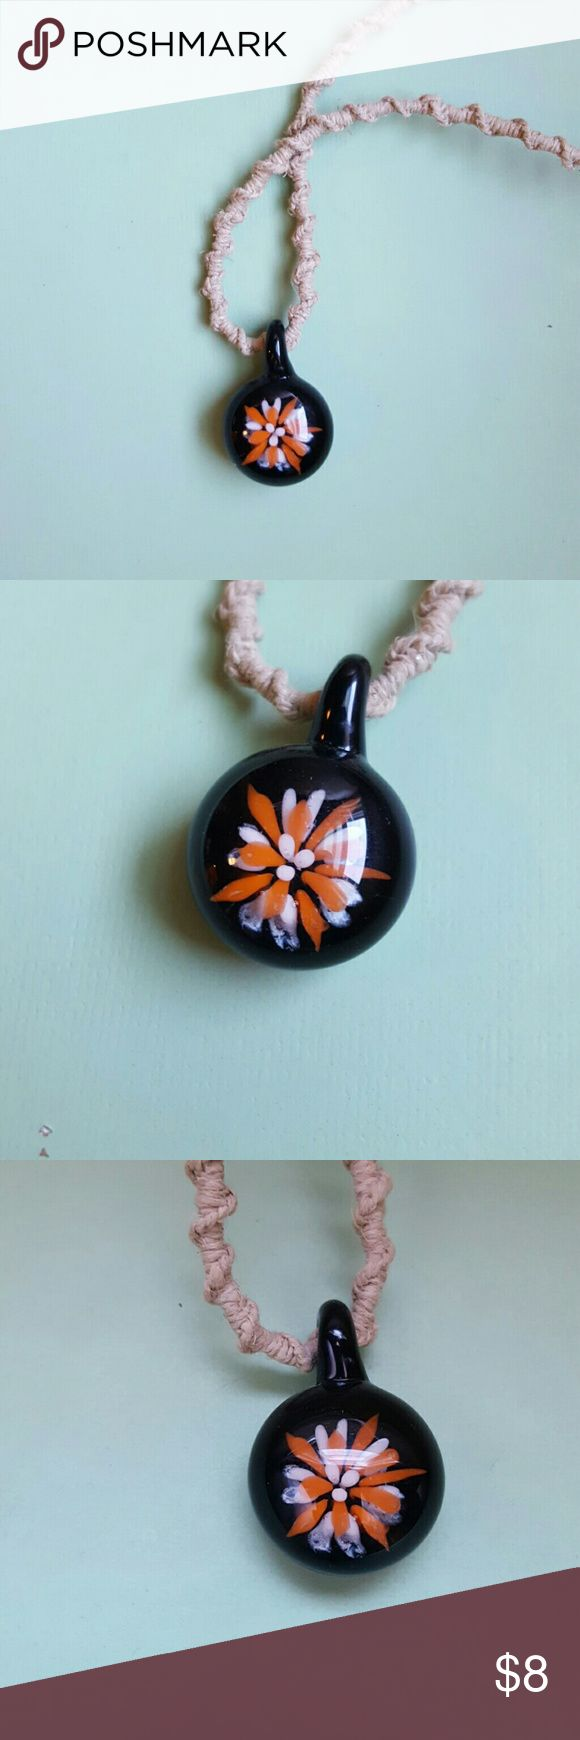 49 best glass pendants images on pinterest eye glasses blown glass and hemp necklace simple hemp cord with a black orange and white blown mozeypictures